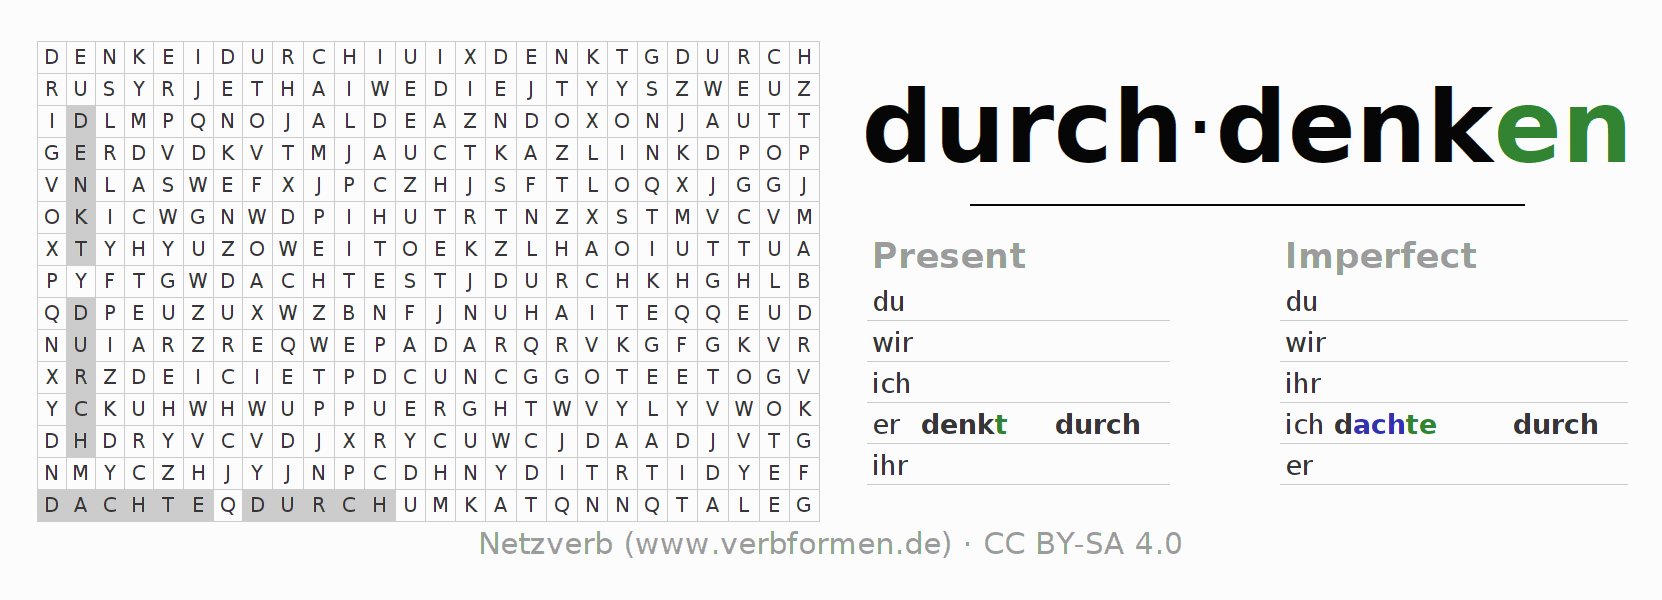 Word search puzzle for the conjugation of the verb durch-denken